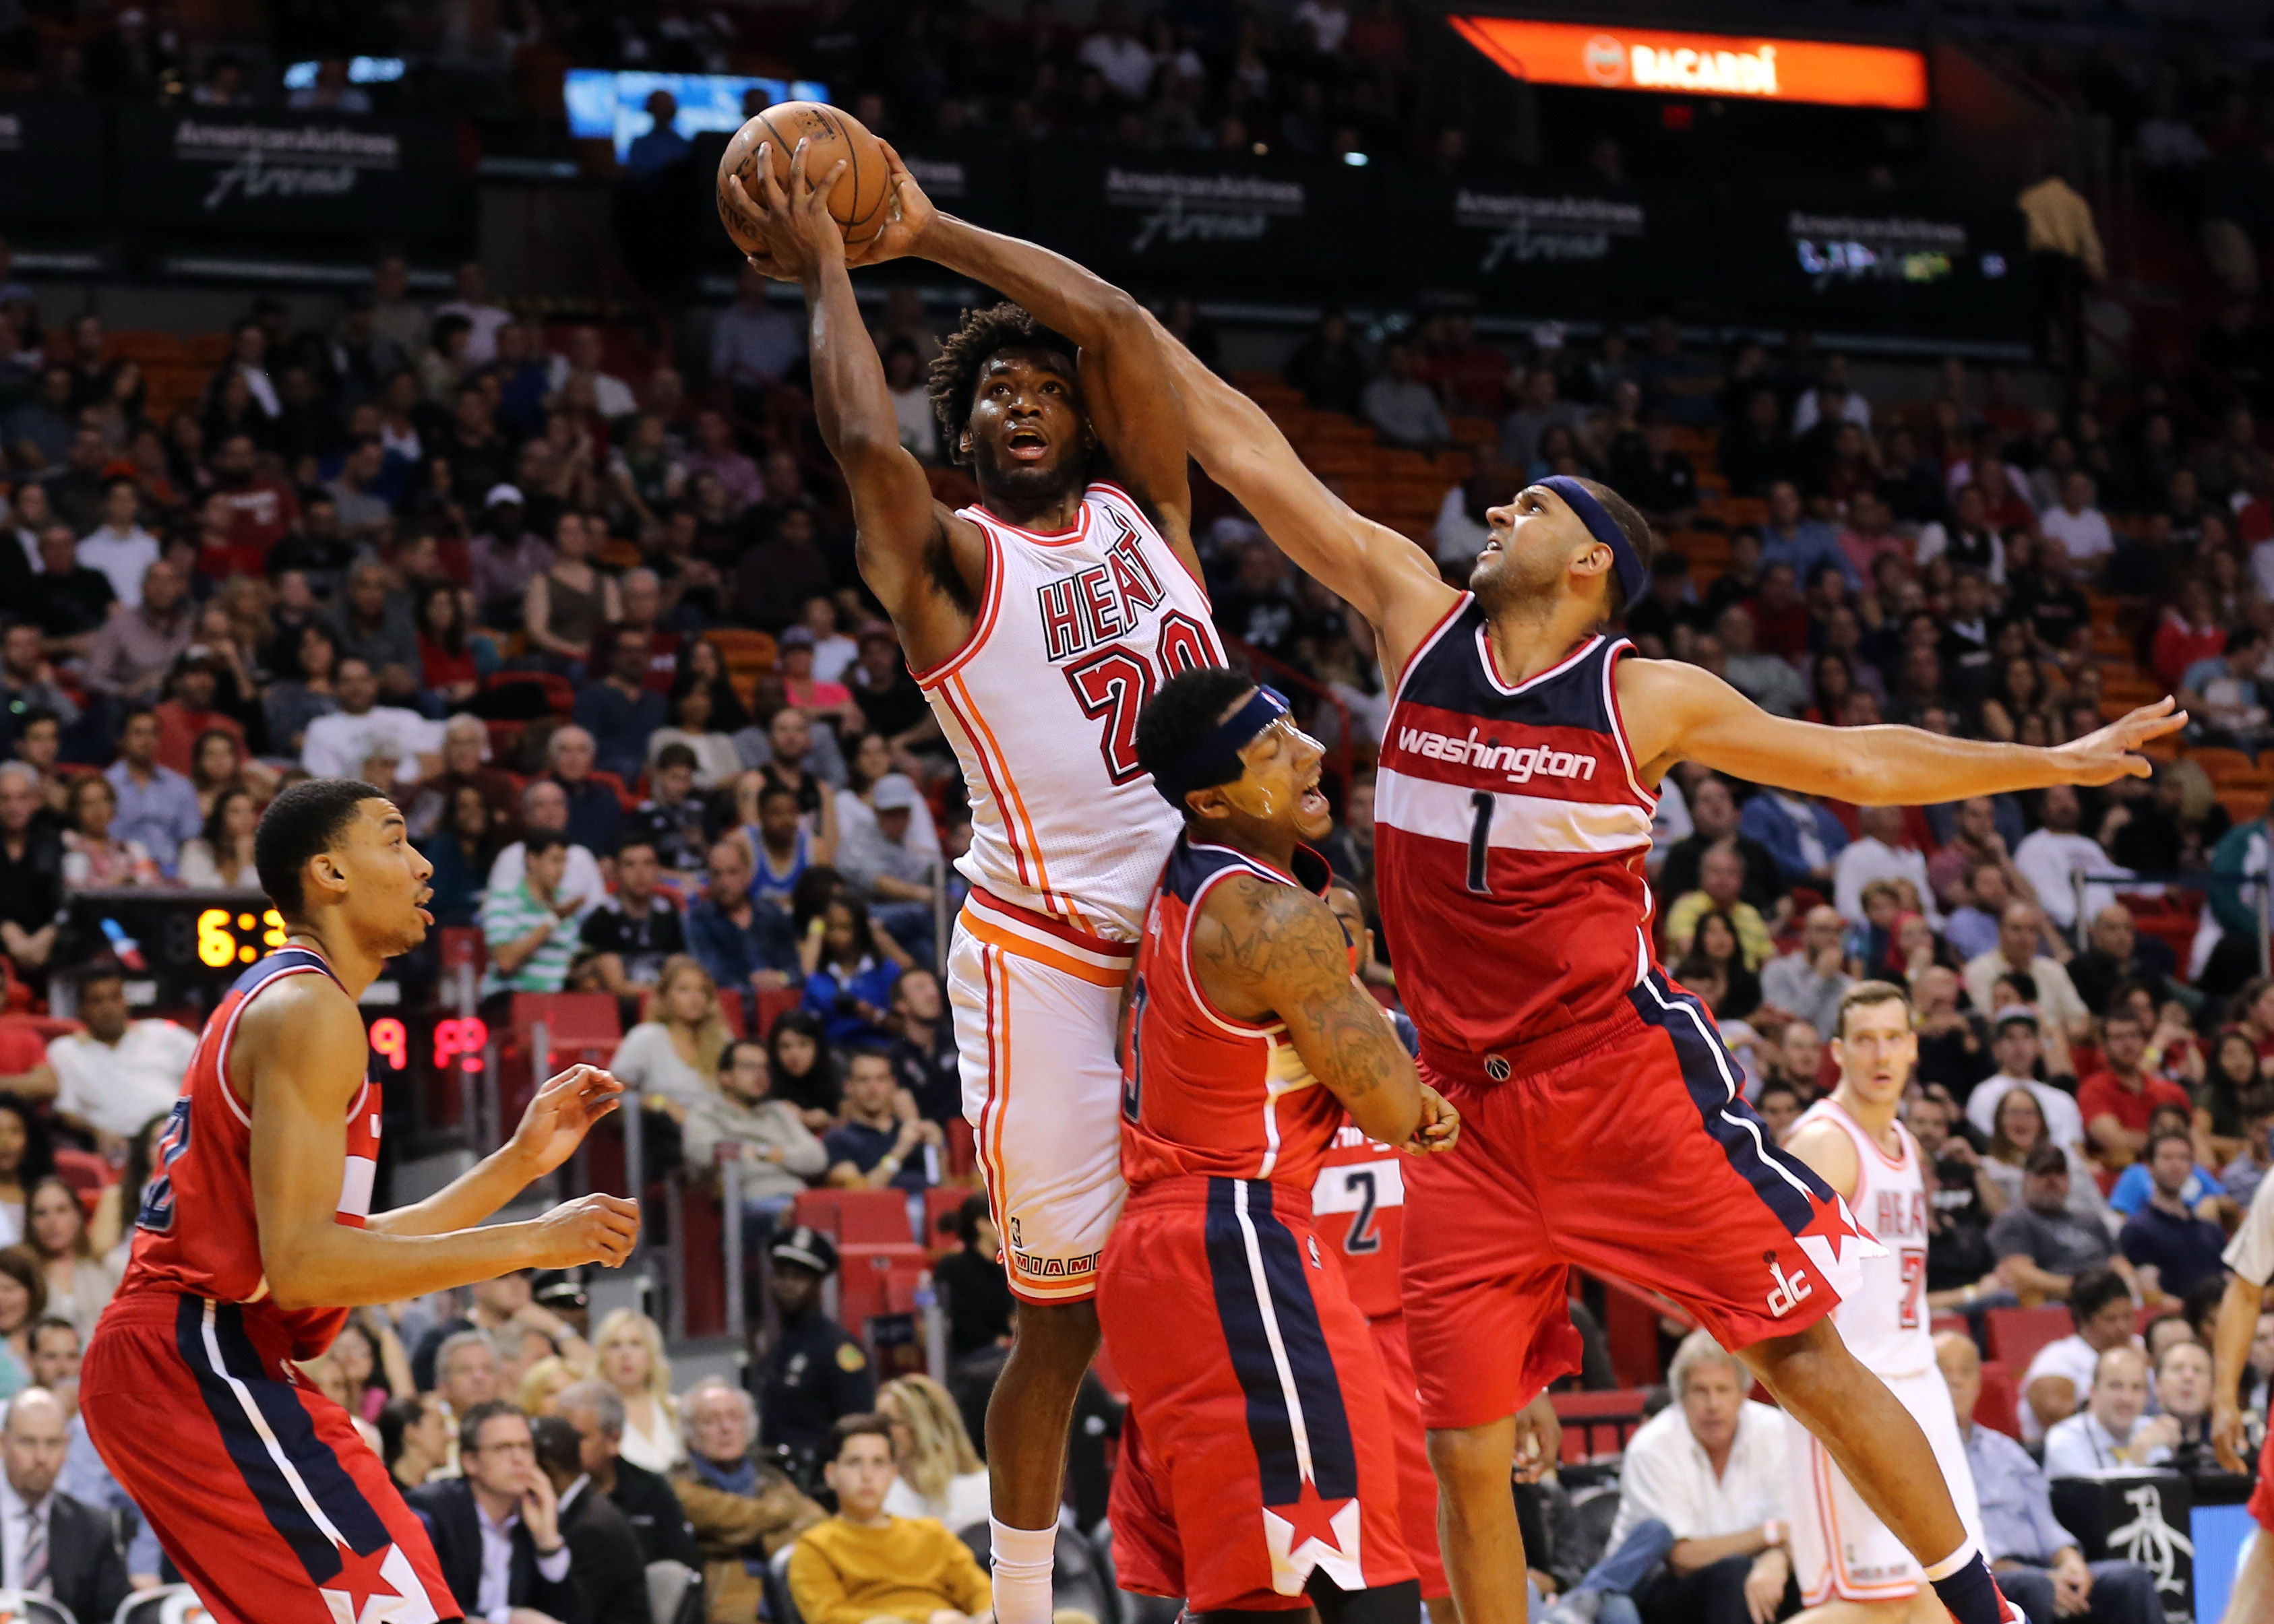 Miami Heat forward Justise Winslow (20) is fouled by Washington Wizards forward Jared Dudley (1) during the second half at American Airlines Arena.